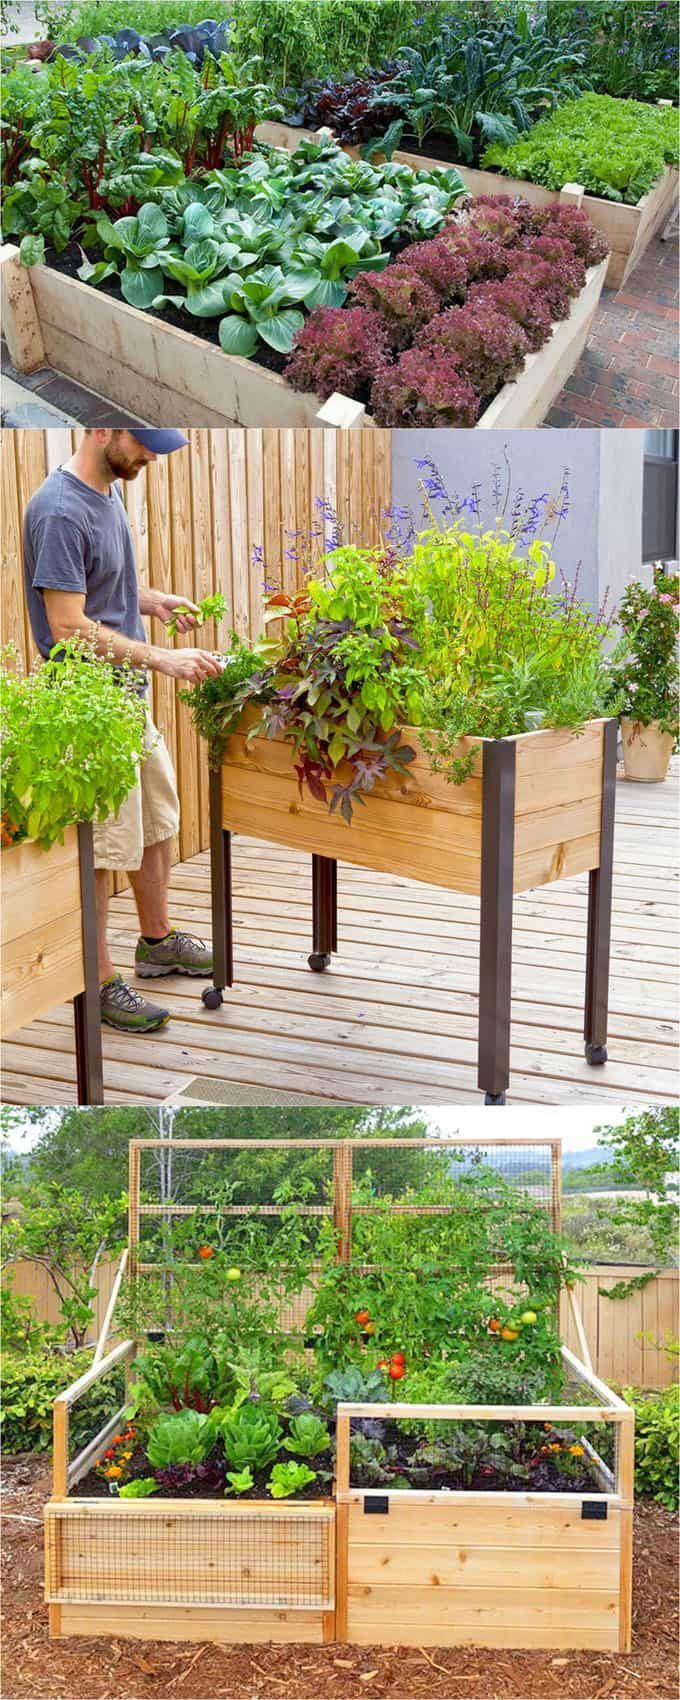 28 Most Amazing Raised Bed Gardens With Diffe Materials Heightany Creative Variations Great Tutorials And Ideas On How To Build Beds